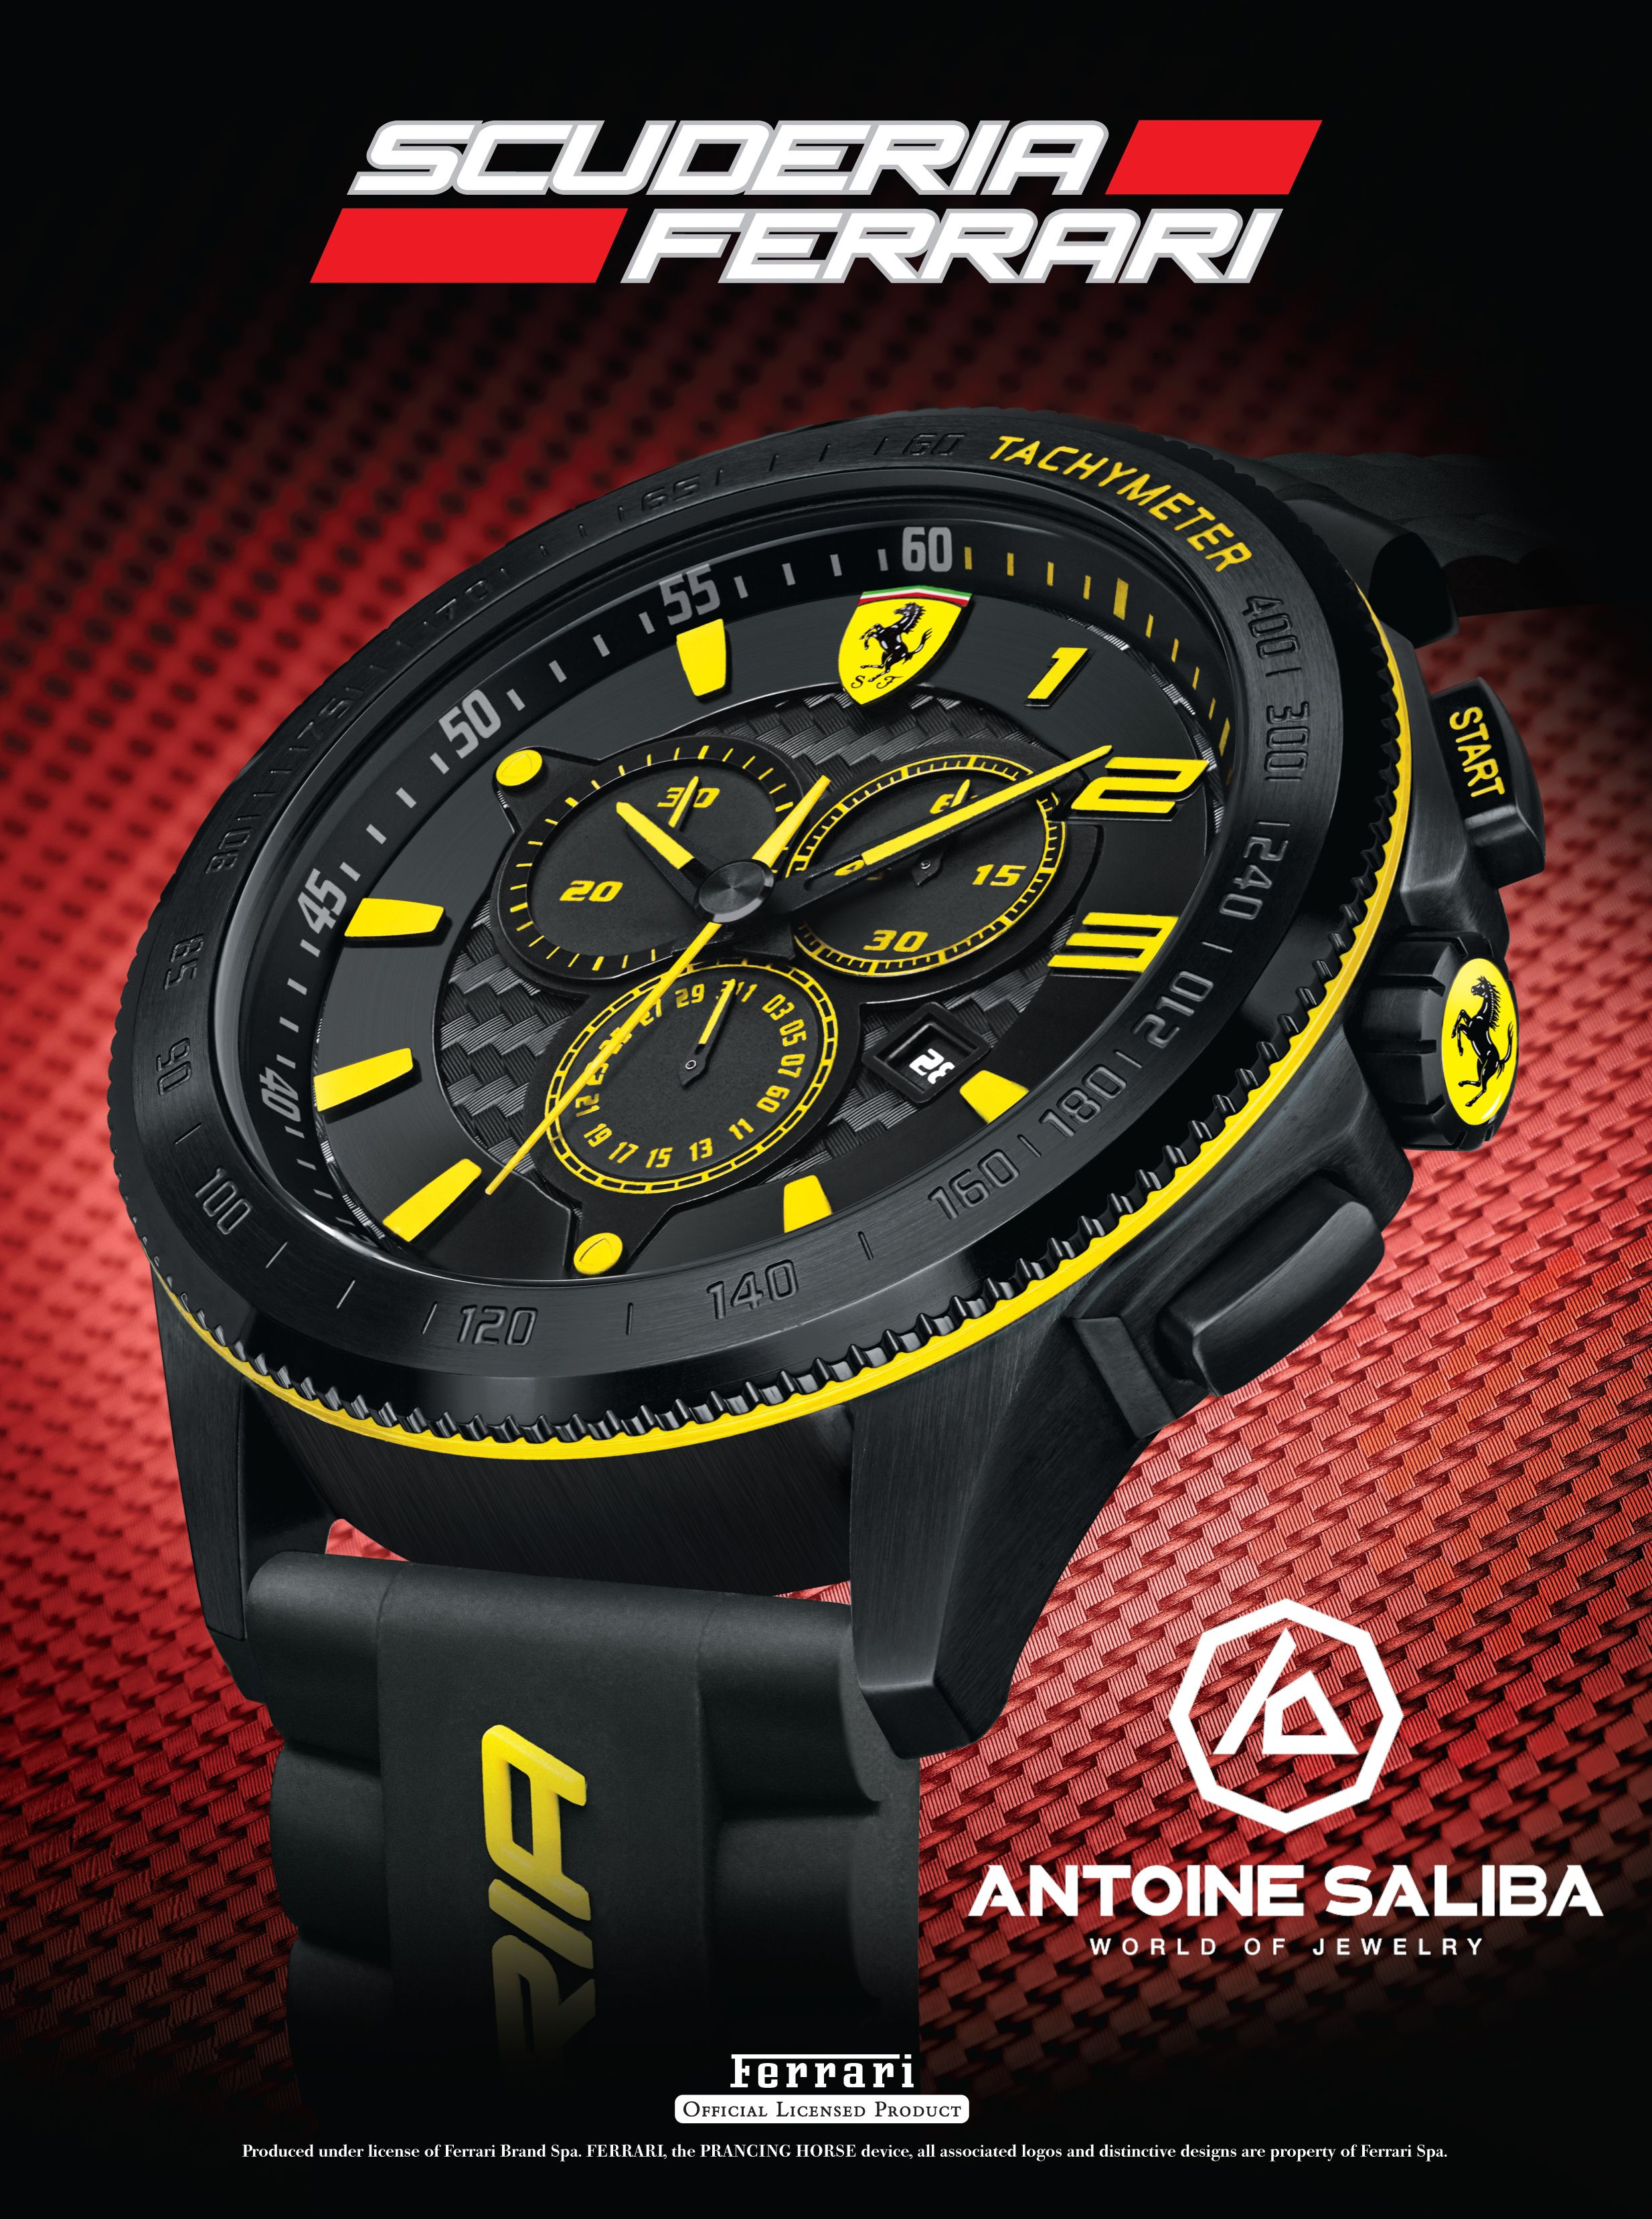 scuderia online fashiola buy watches analogue in accessories for men compare ferrari fxx watch